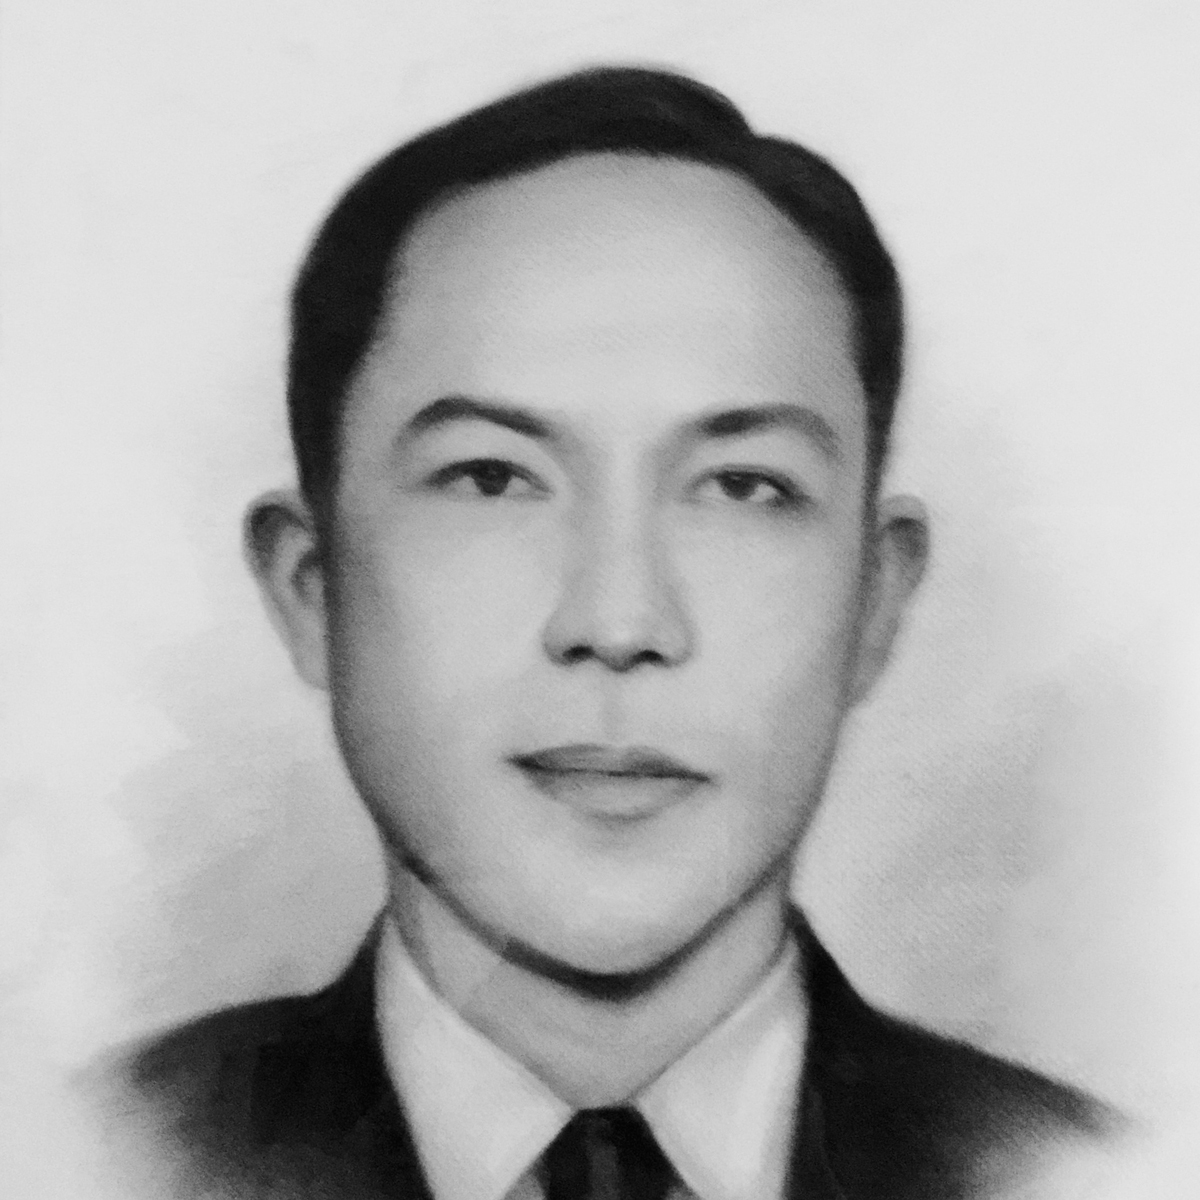 Vicente L. Lozada, Jr